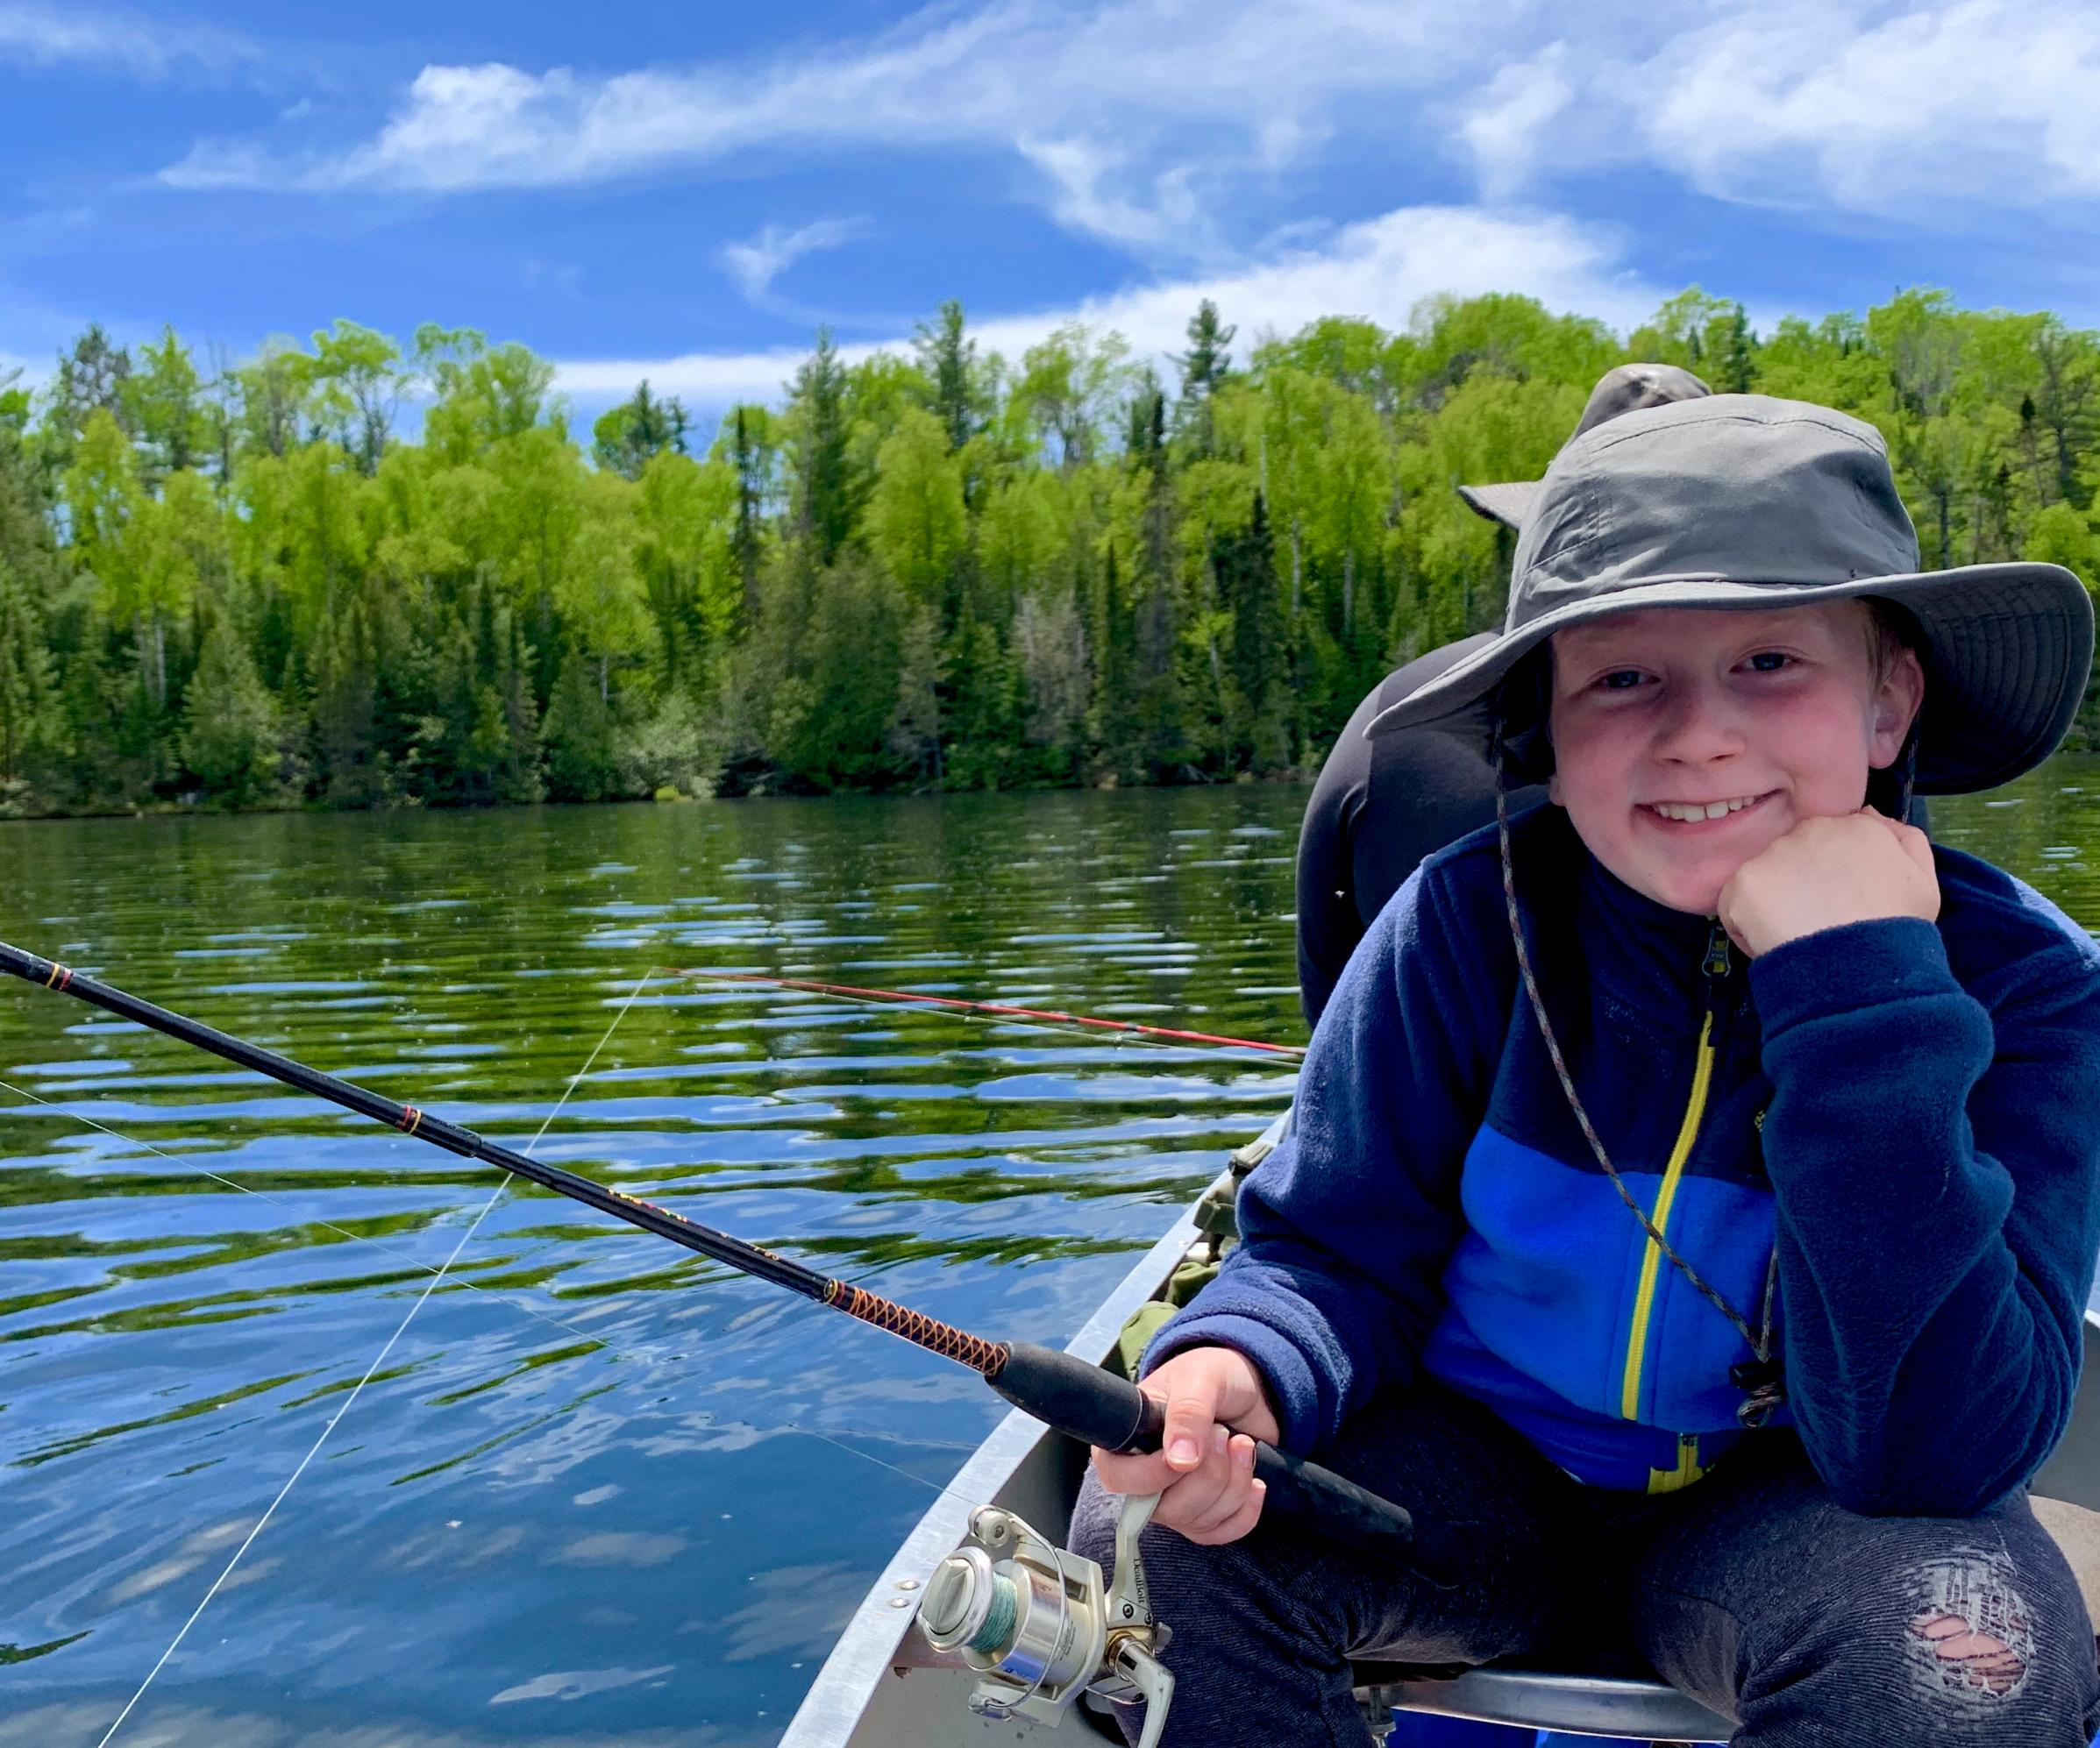 My 9 year old's first BWCA experience